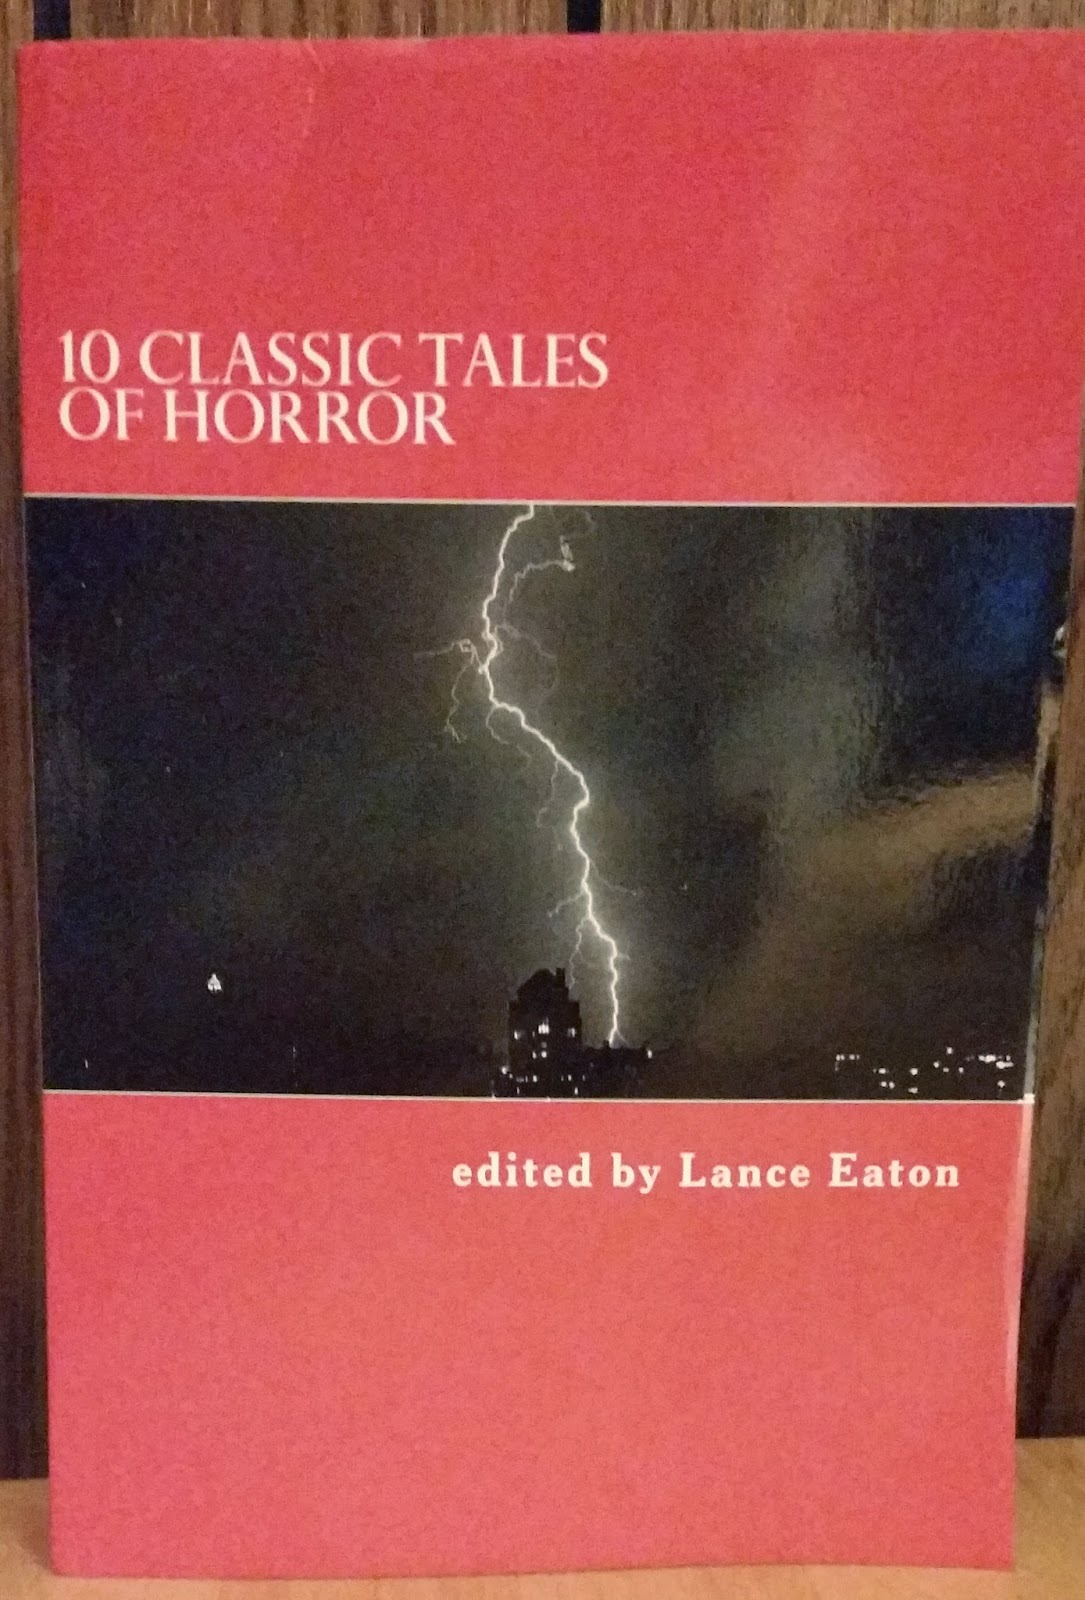 Book Cover - 10 Classic Tales of Horror - Lance Eaton